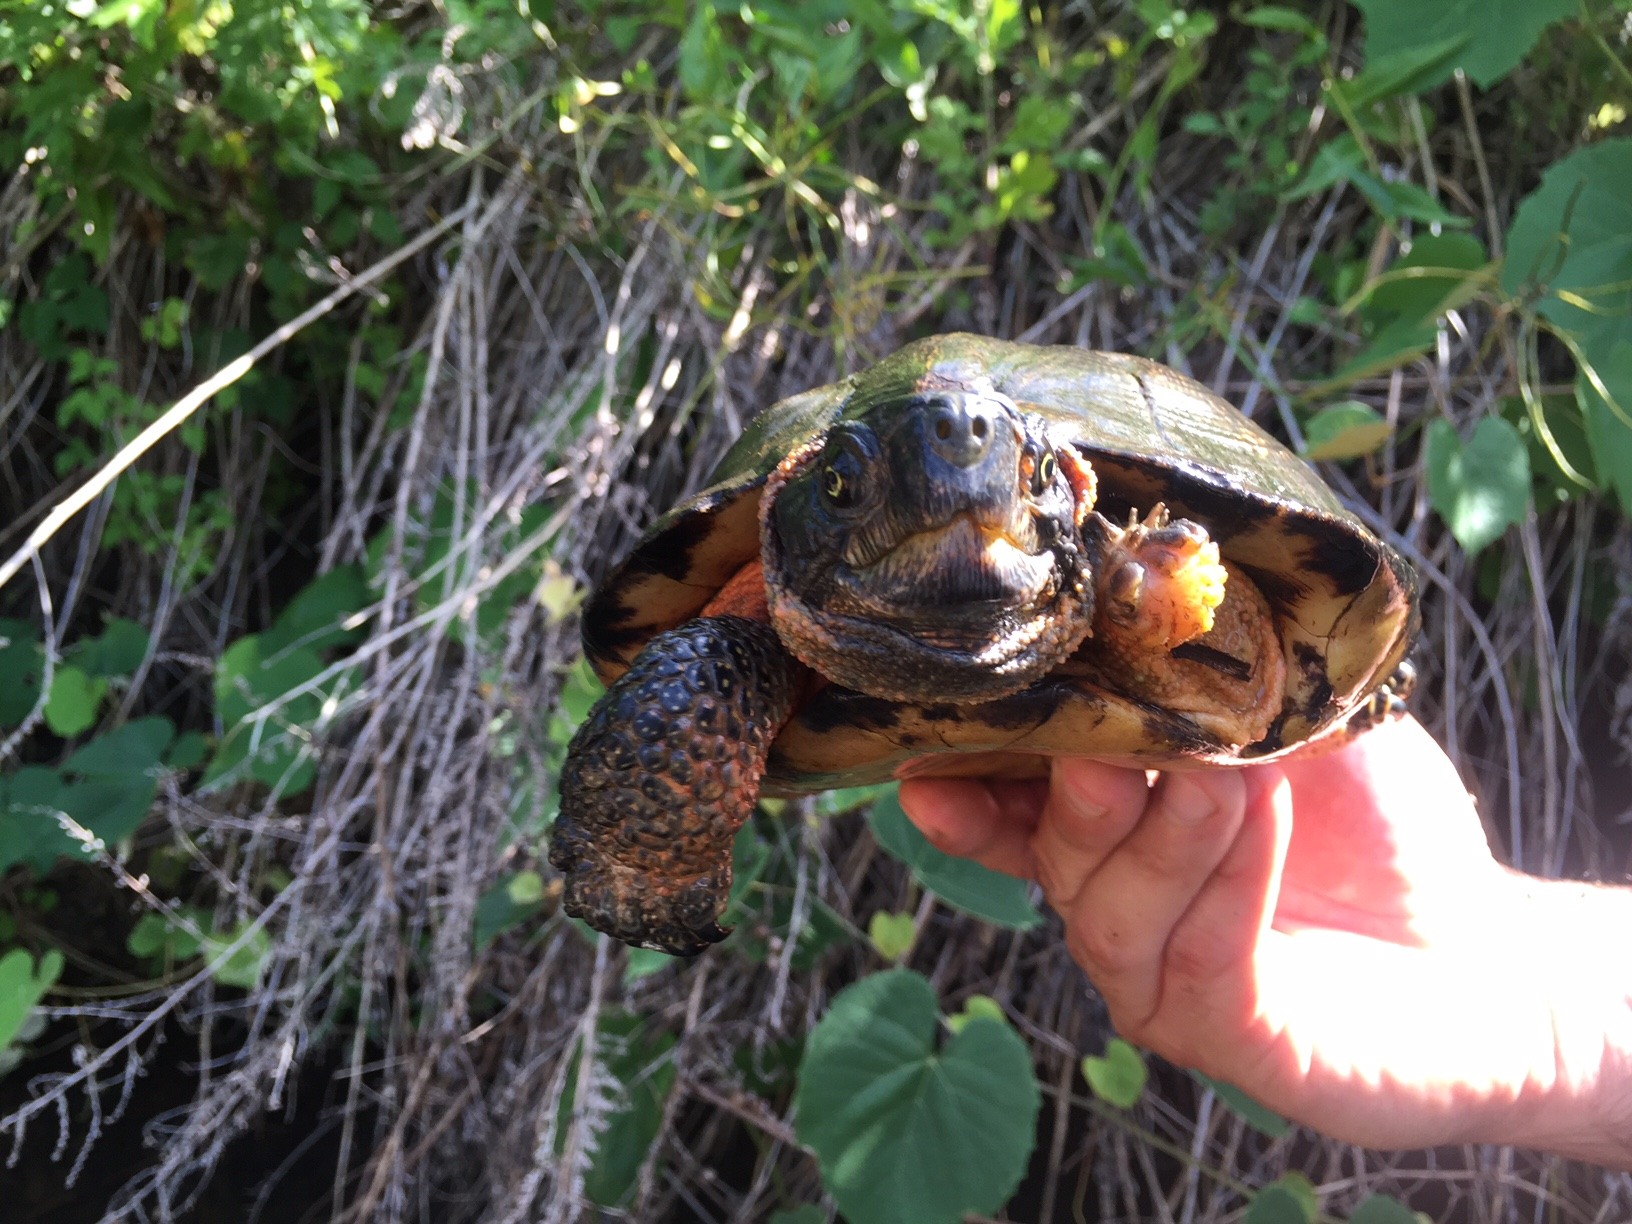 A male wood turtle showing a missing front foot, likely due to a predator.Photograph by Timothy J. Walsh